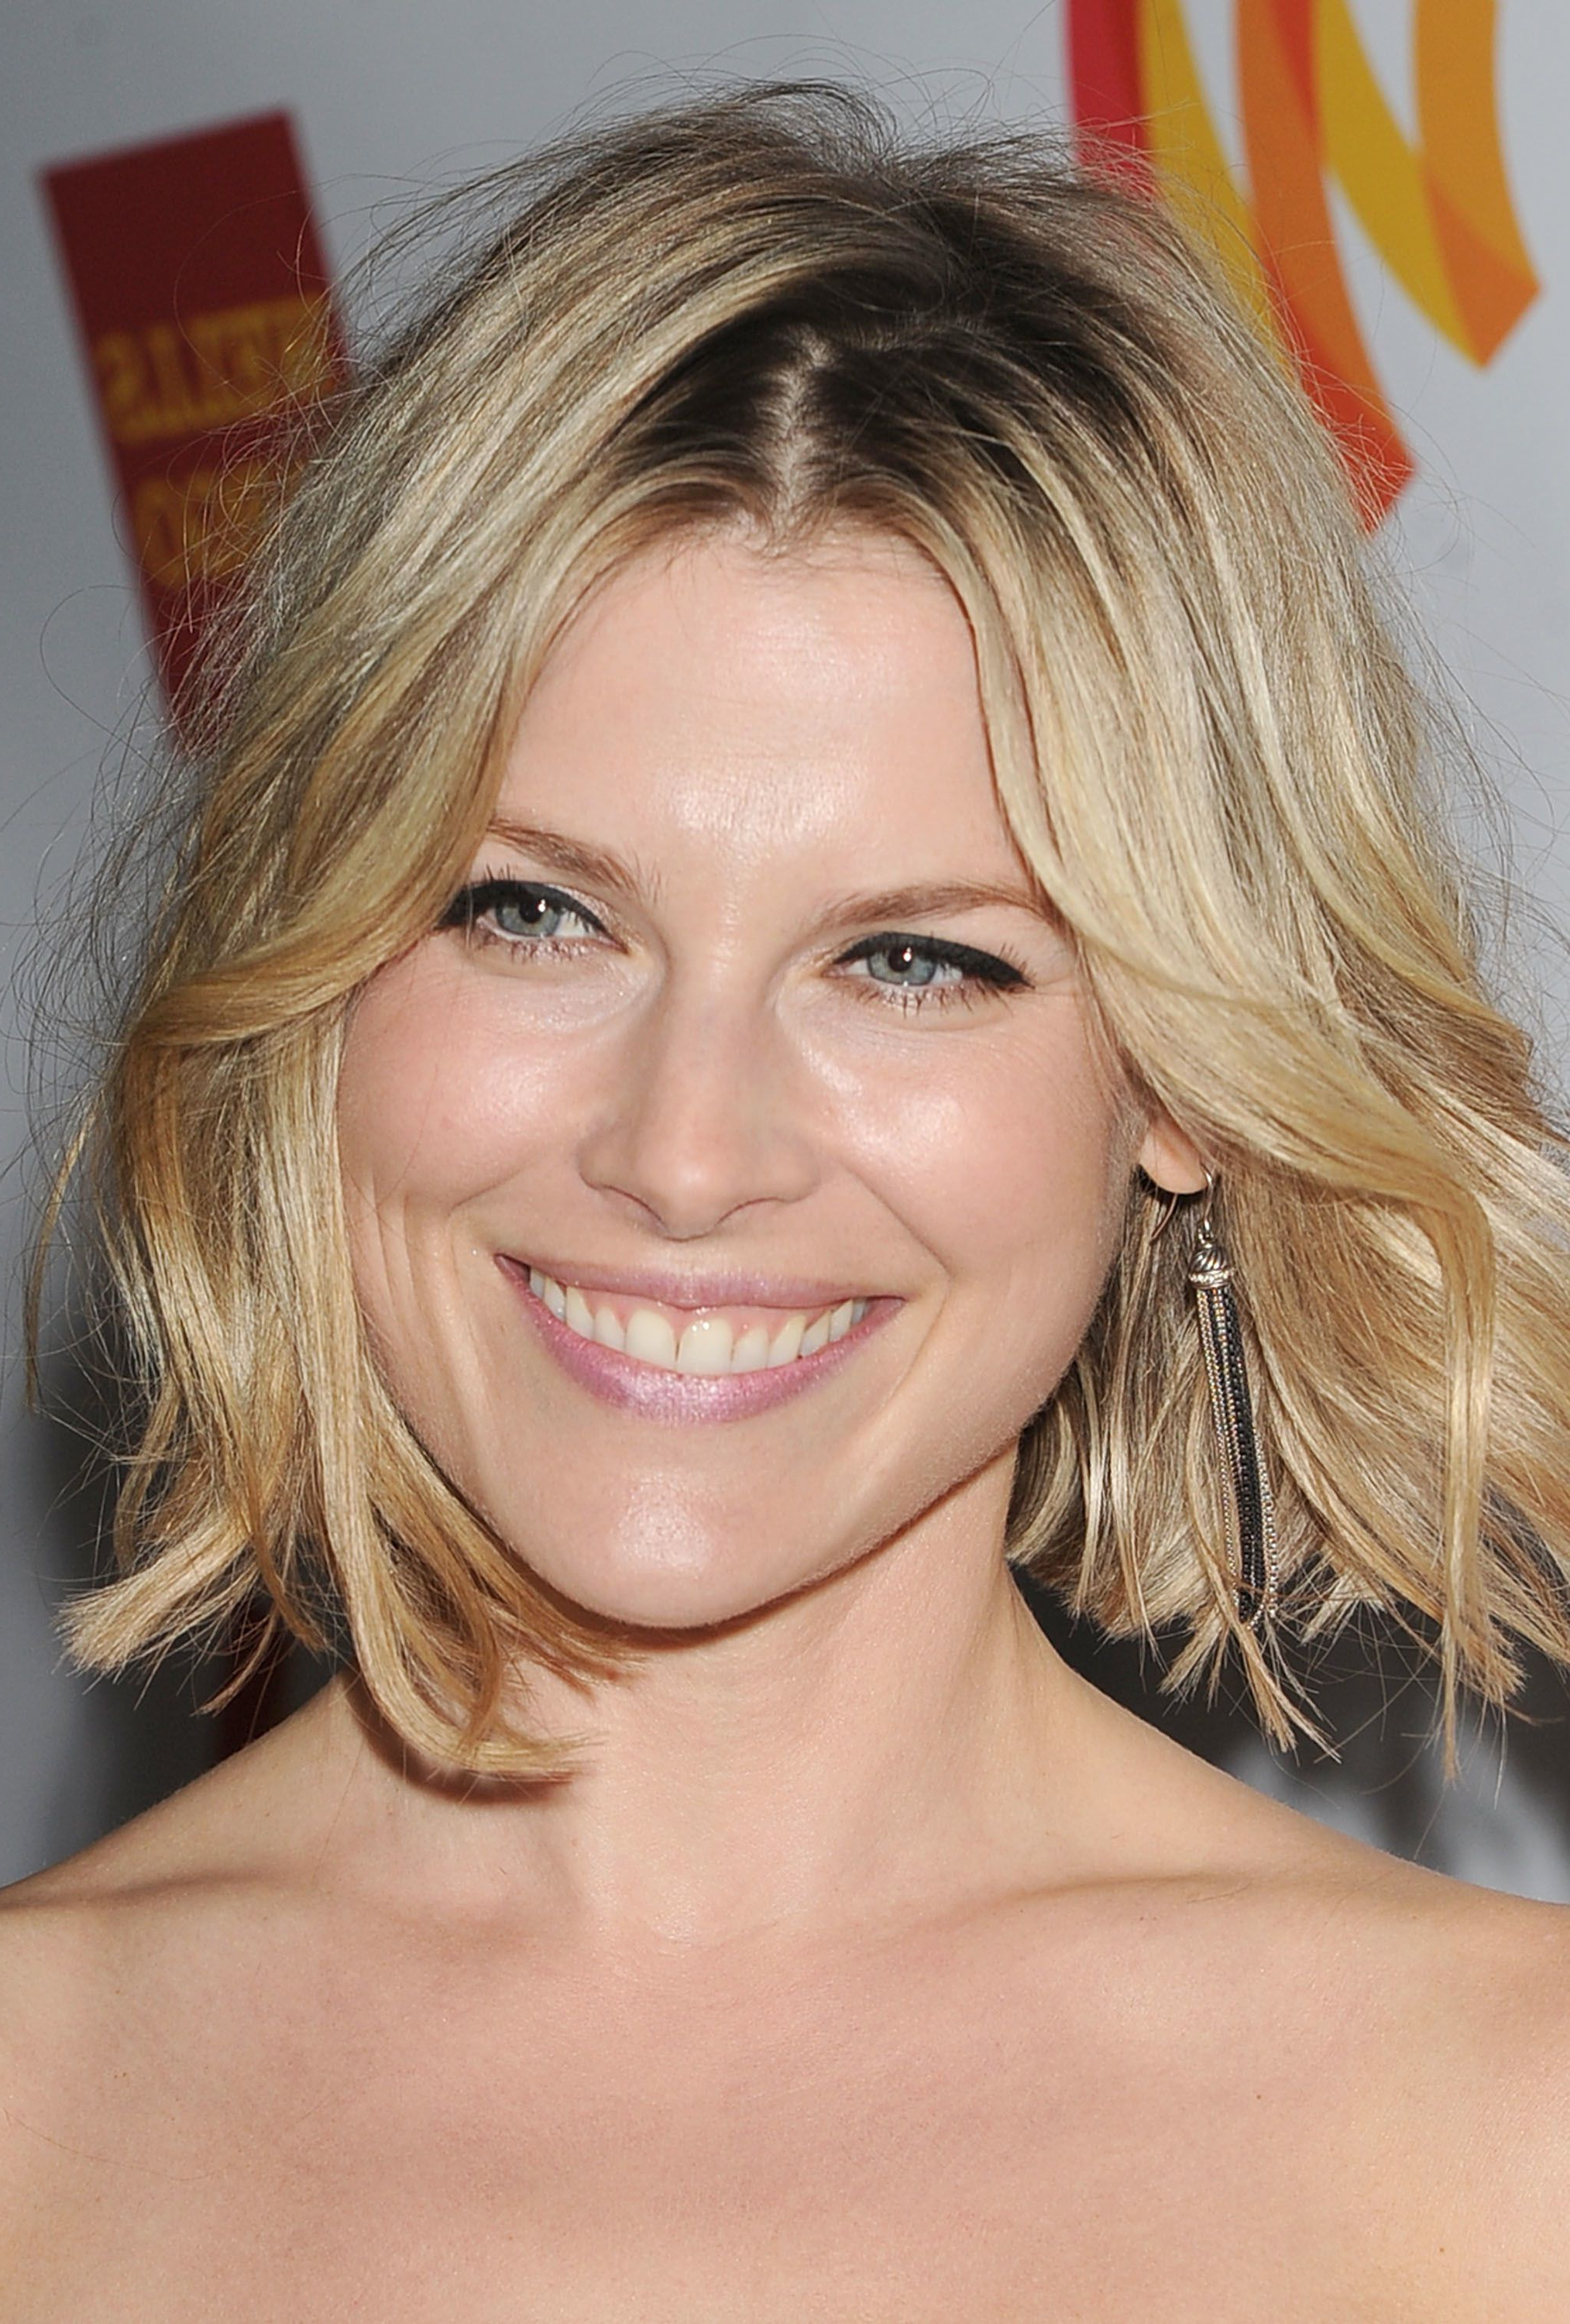 22 Inspiring Short Haircuts For Every Face Shape Within Short Haircuts For High Cheekbones (View 18 of 25)